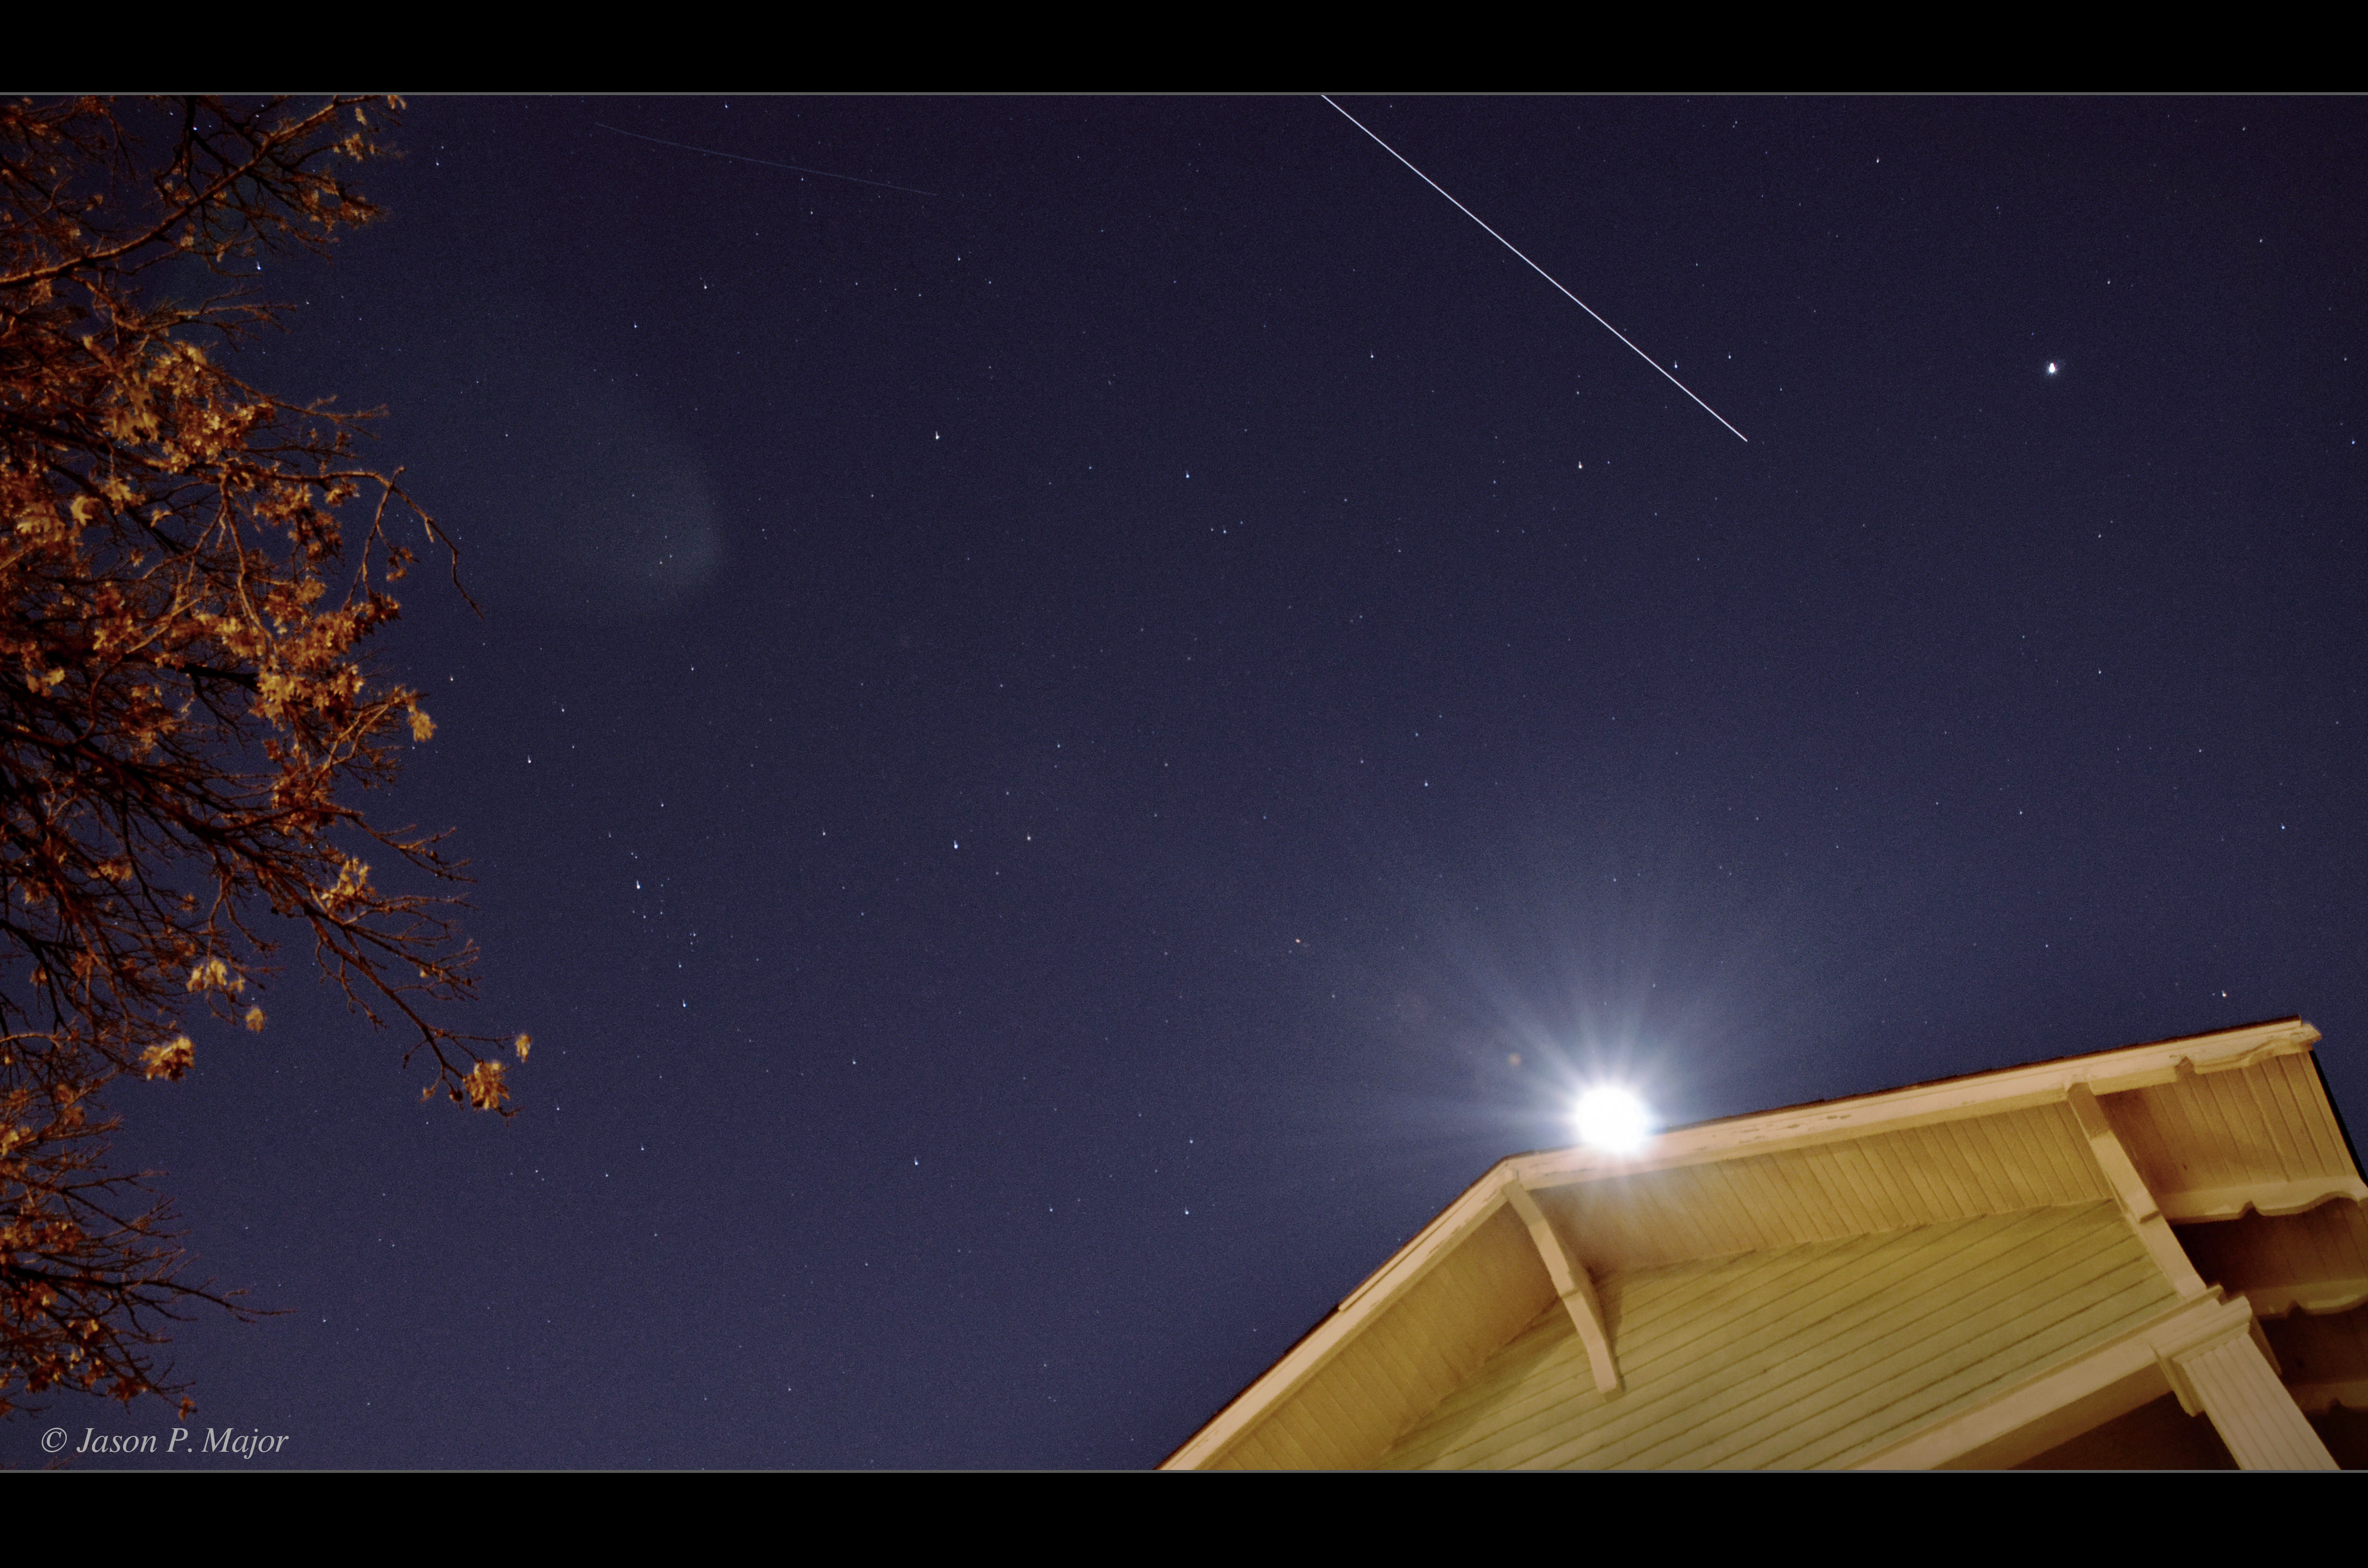 photos of the space station seen from the ground as - photo #40